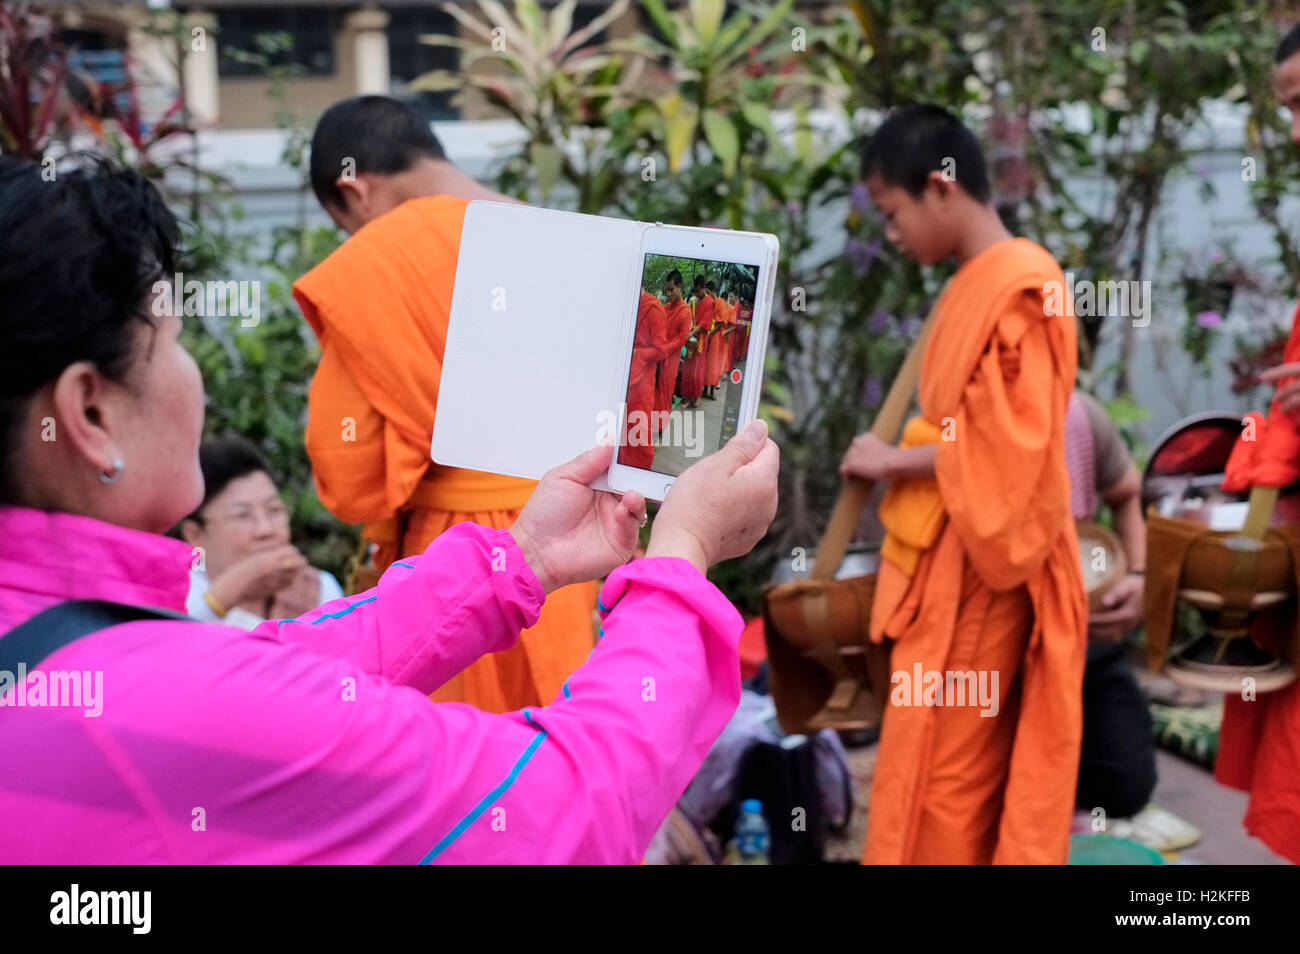 Tourist taking picture of Laos Monks on Tablet computer - Stock Image